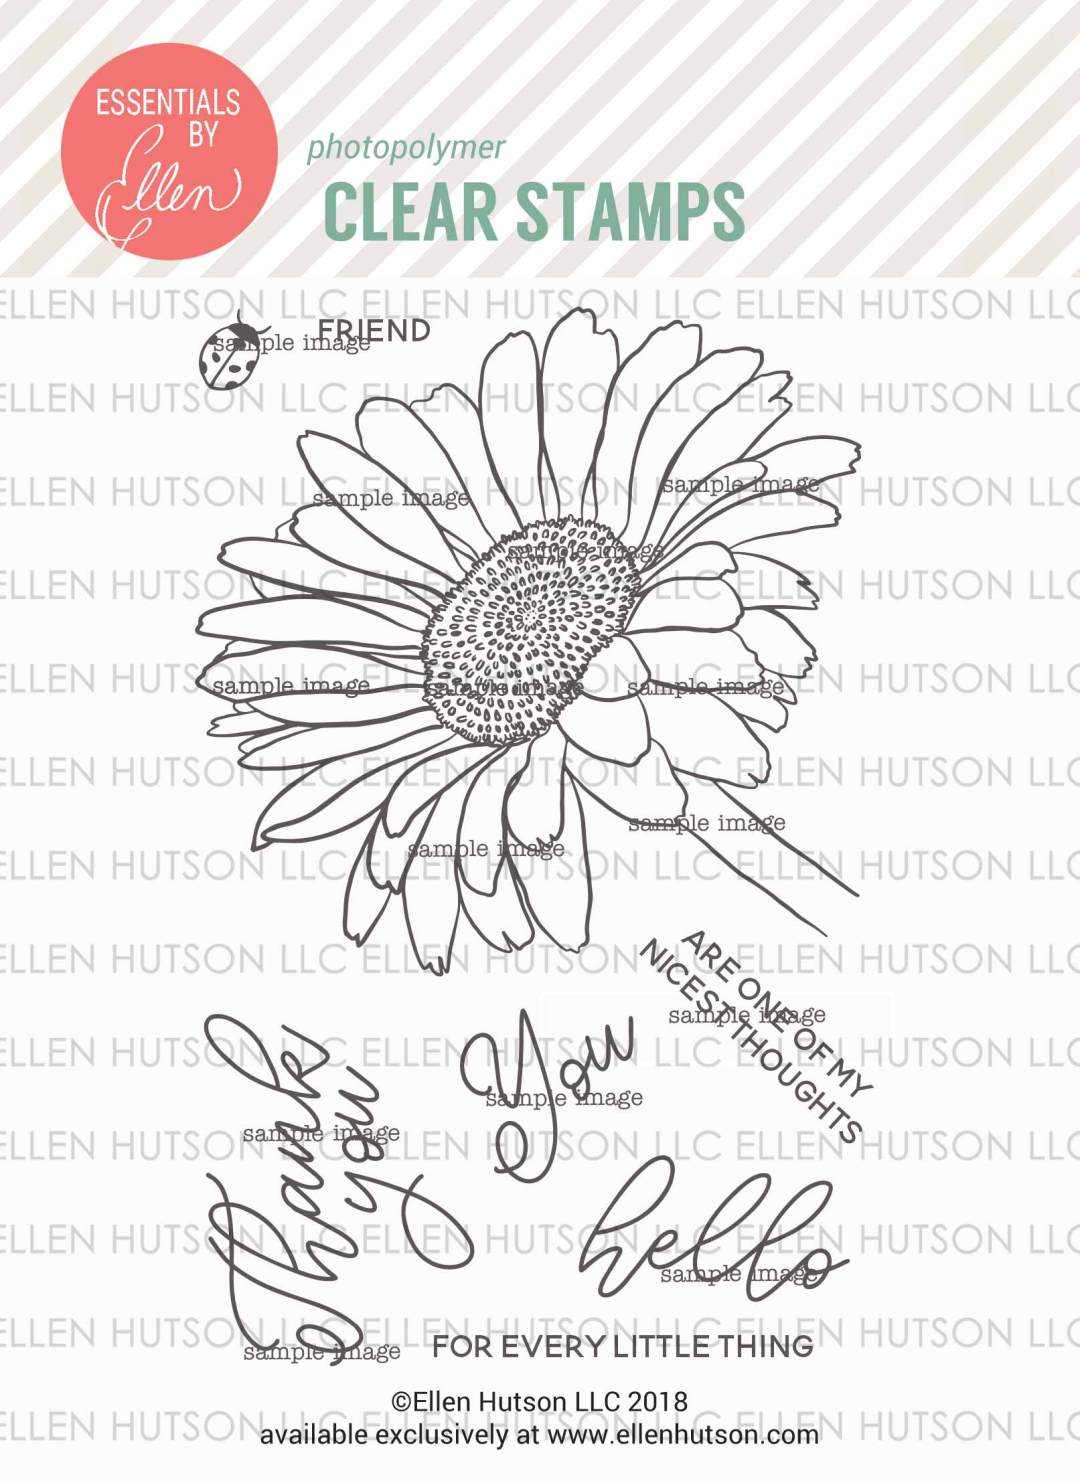 Essentials by Ellen Mondo Gerbera Daisy stamps